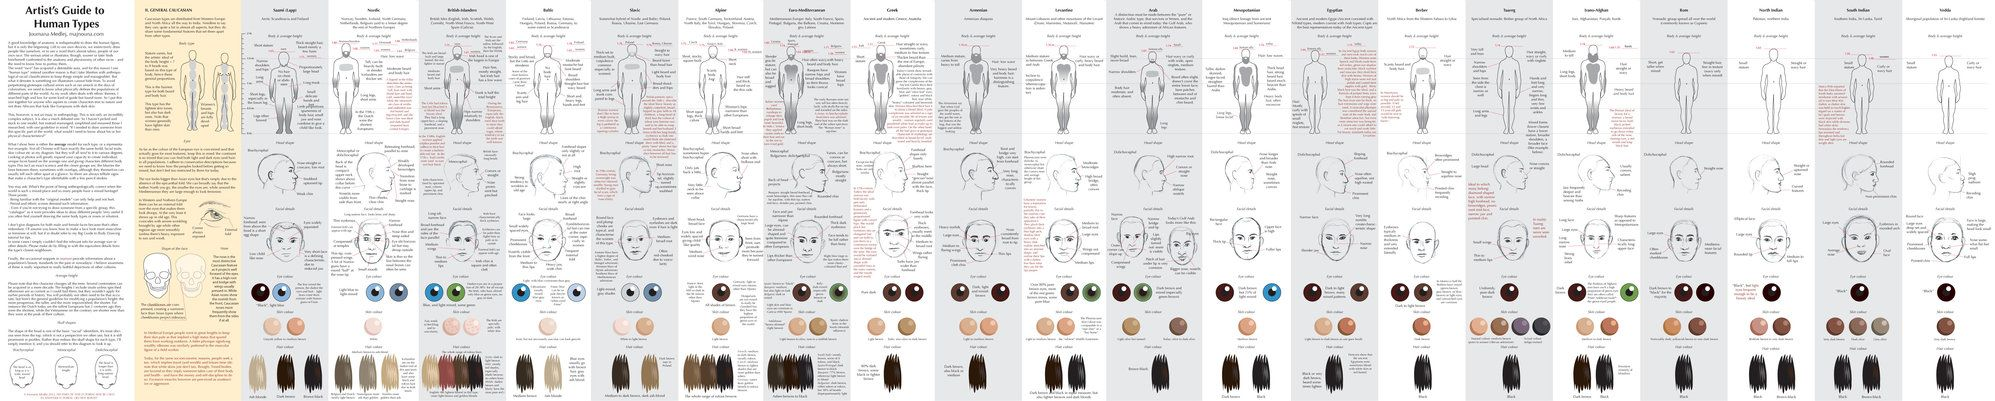 30+ Guide to Human Types part 2 by Majnouna on DeviantArt